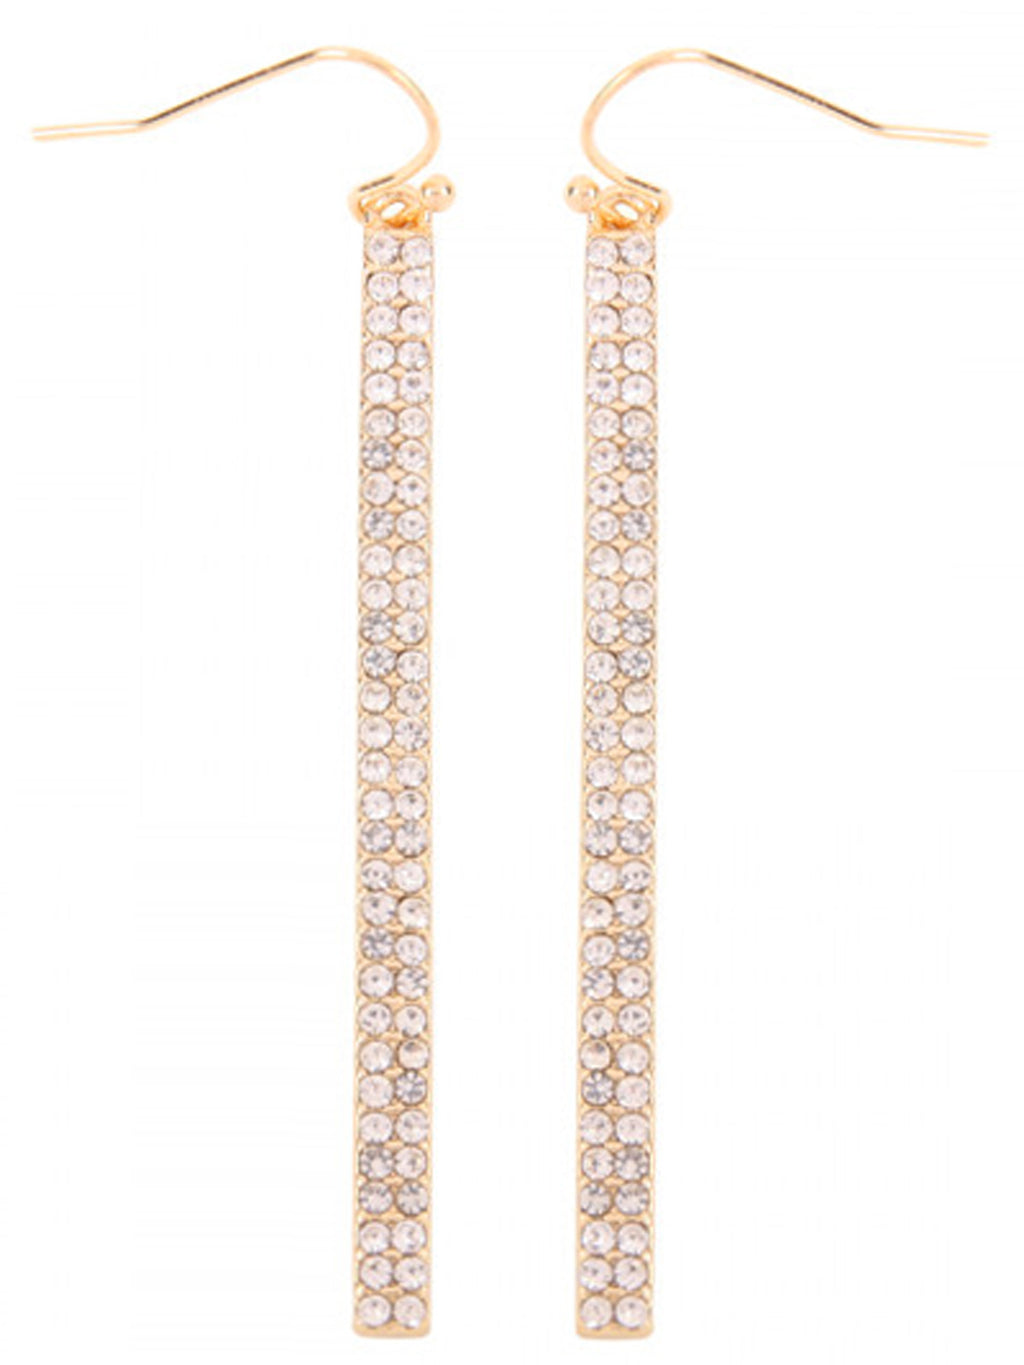 Gold Double Row Rhinestone Earrings